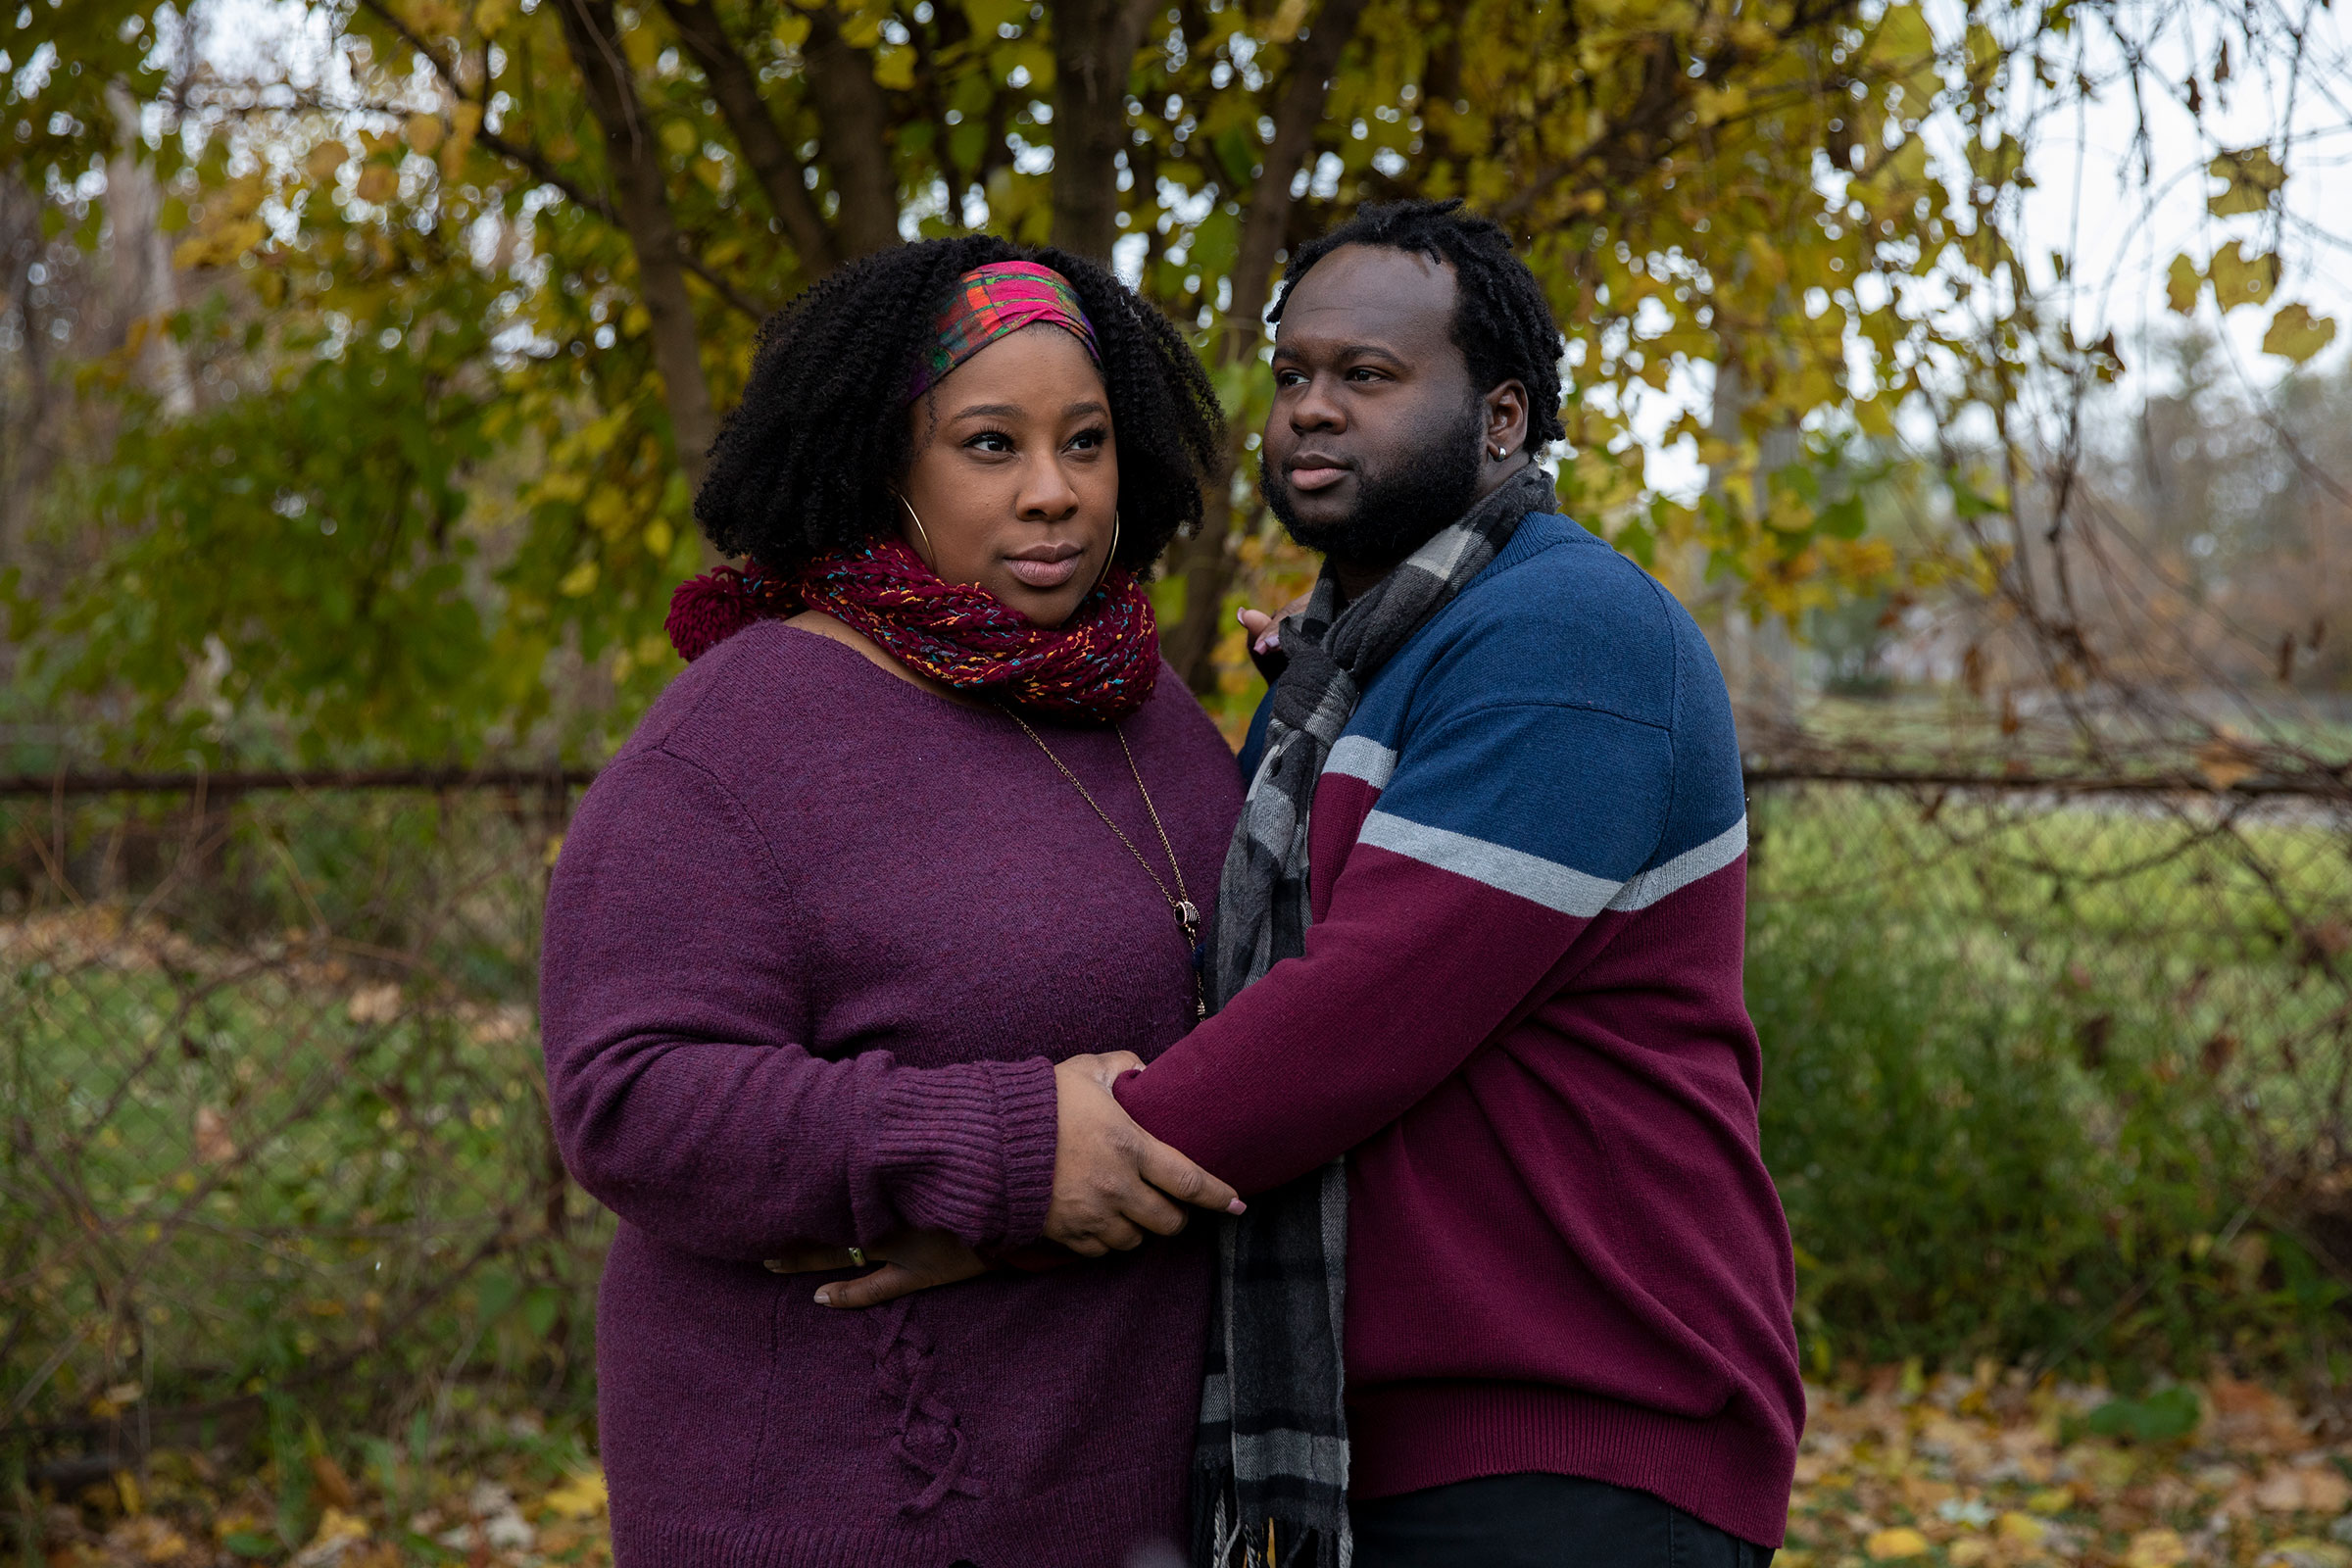 Aaron Jarvis poses for a portrait with her husband Marty Jarvis outside of their home in Detroit, Mich. on Nov. 1, 2020.